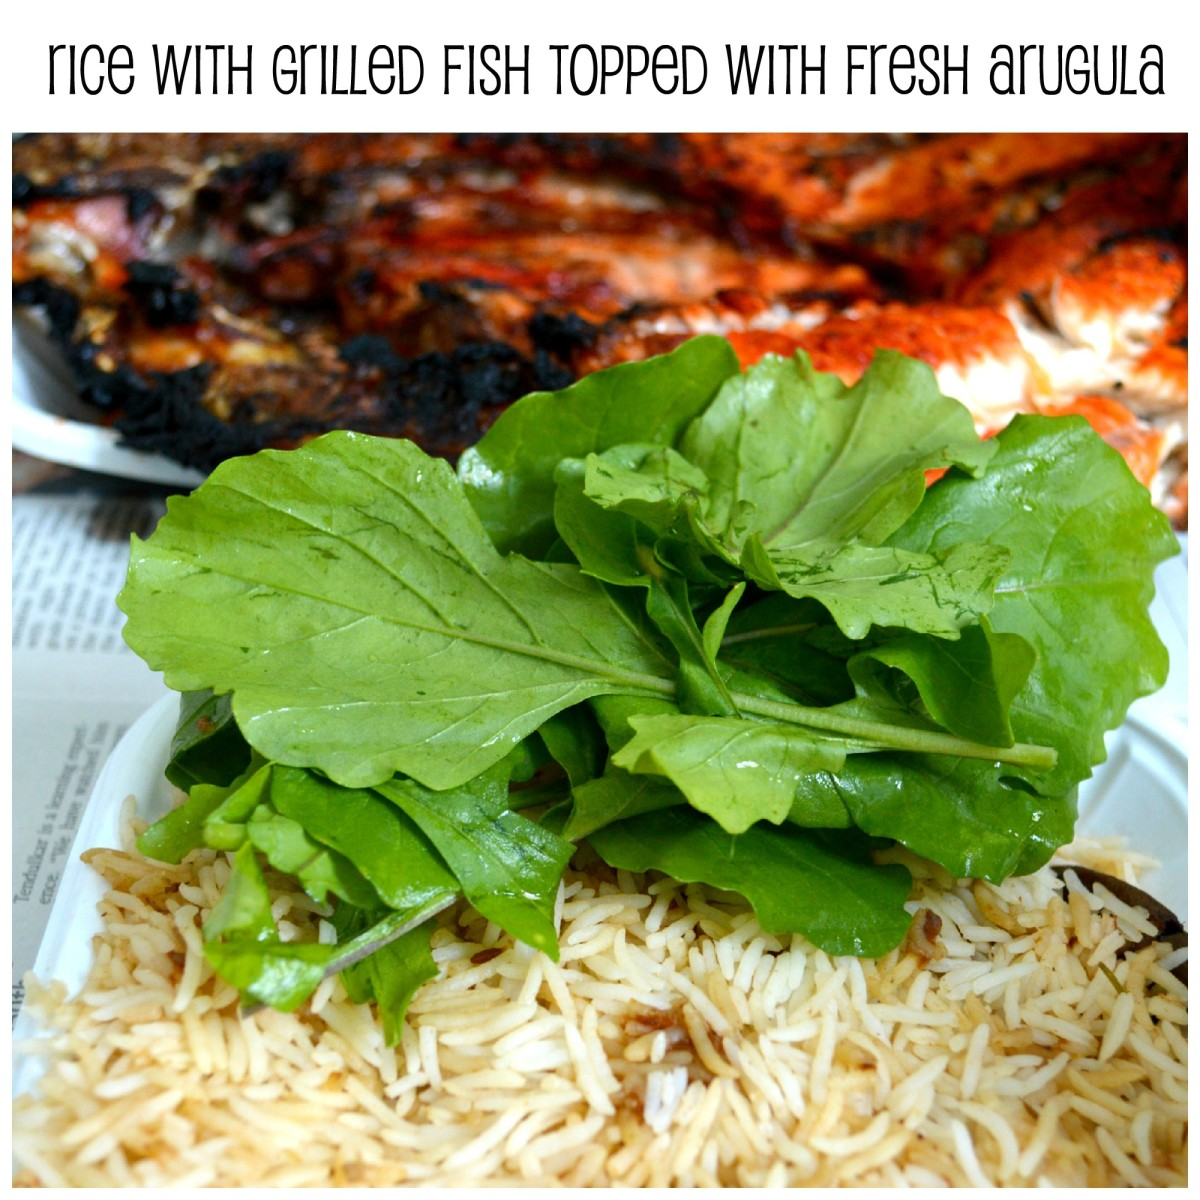 A delicious meal of flavoured rice and grilled fish, served with a topping of fresh crisp arugula leaves.